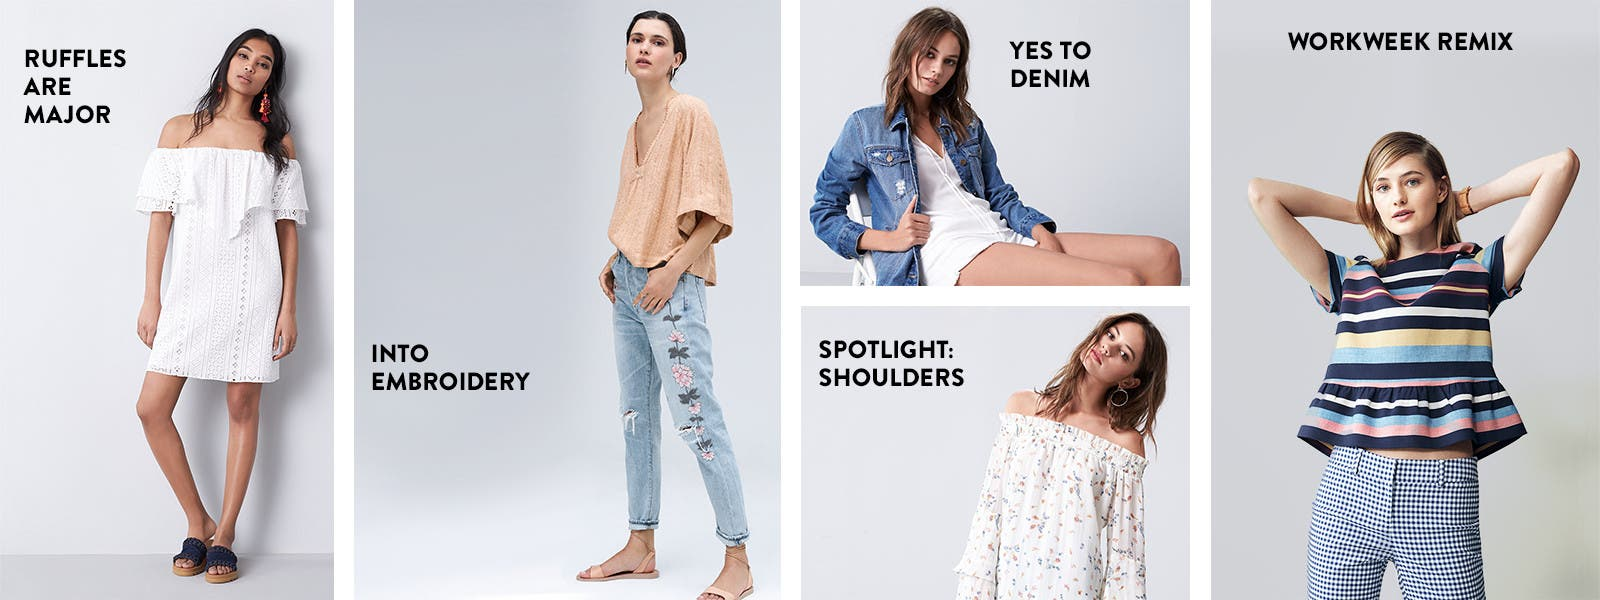 The ruffle trend is major. / Yes to denim jackets. / Spotlight on off-the-shoulder tops. / Into embroidered jeans. / The workweek remix.